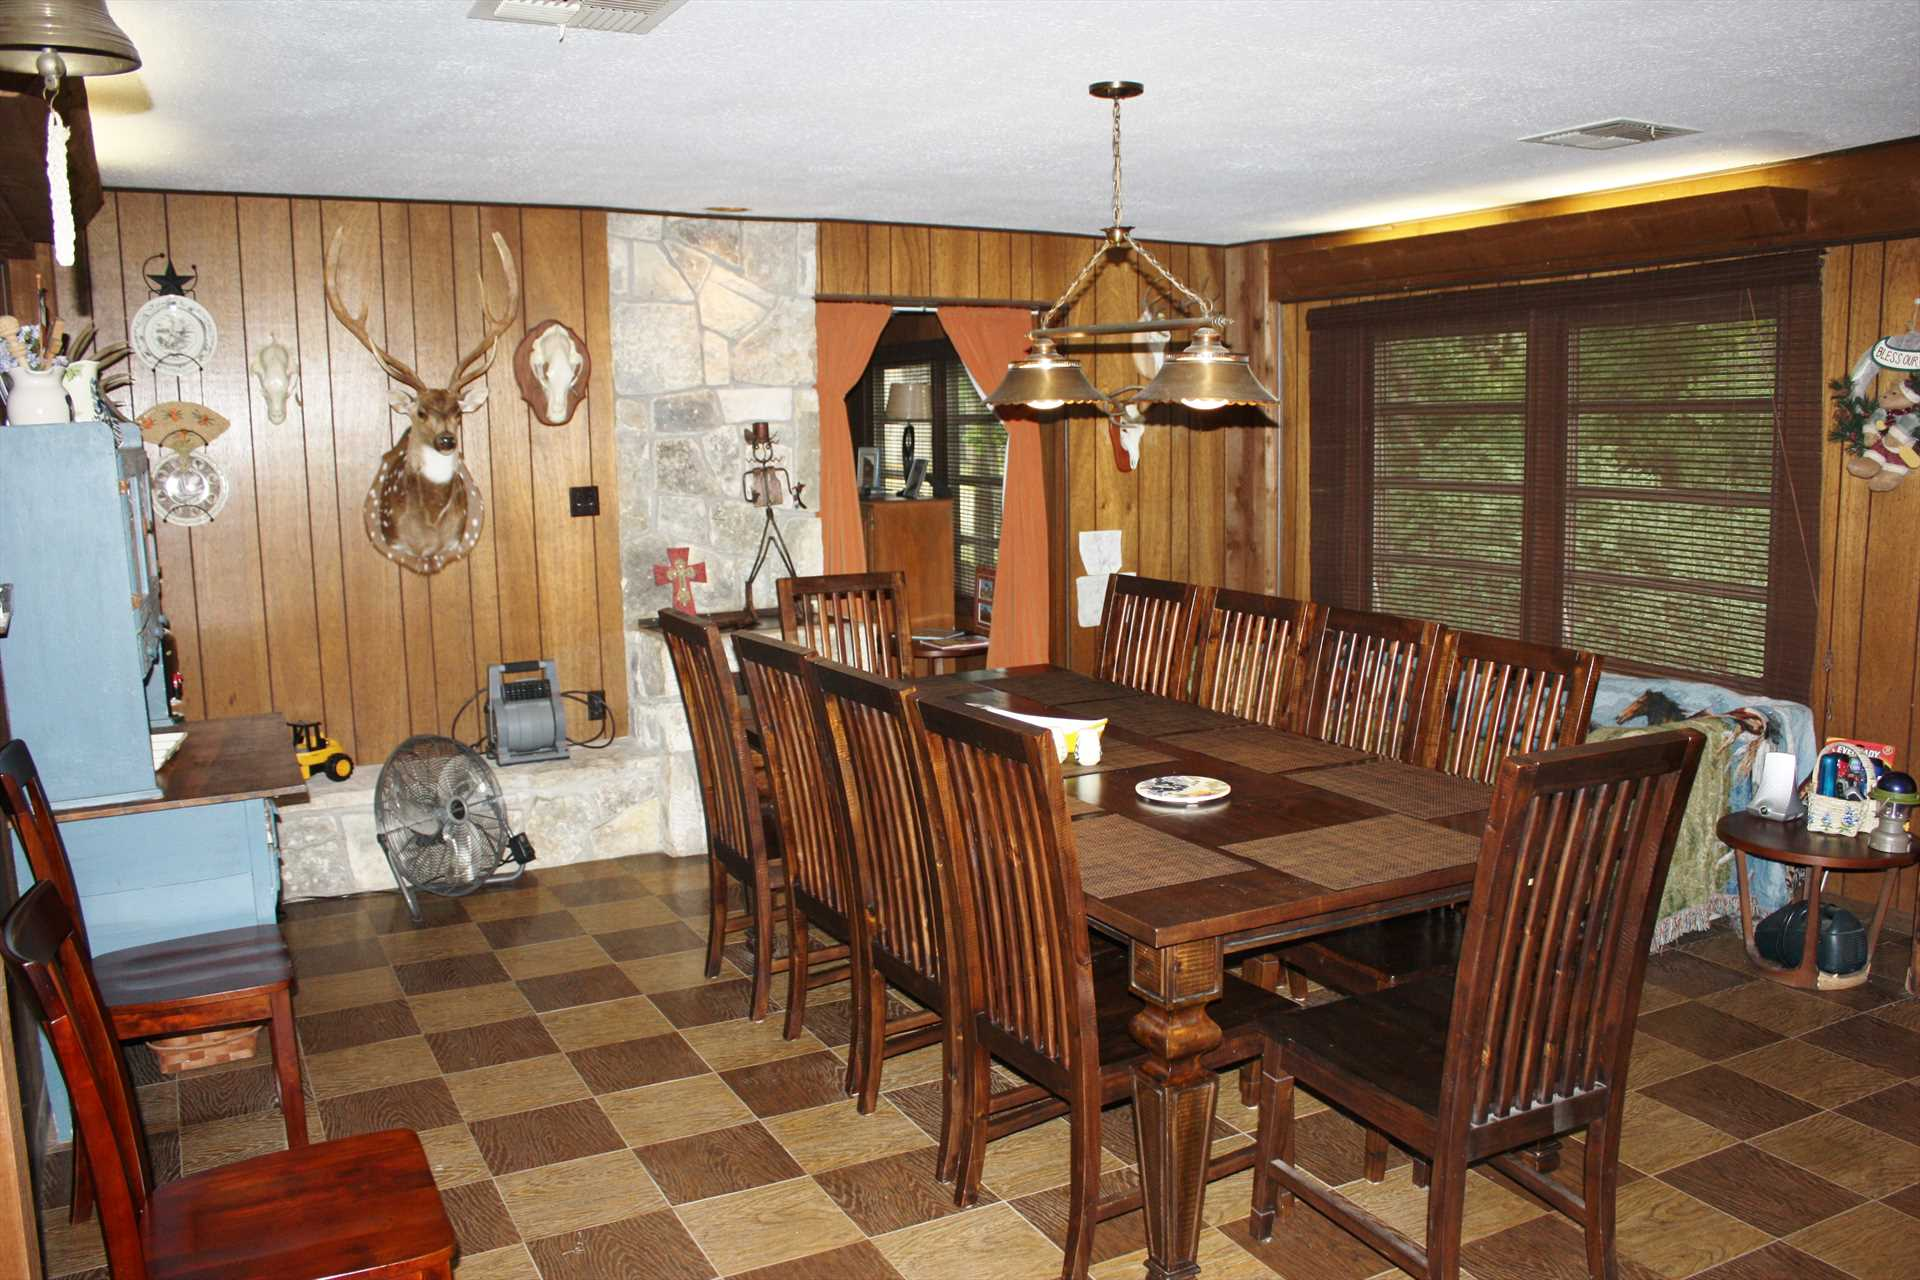 The handsomely-appointed dining room offers plenty of space for a family feast! The table is also great for gaming.